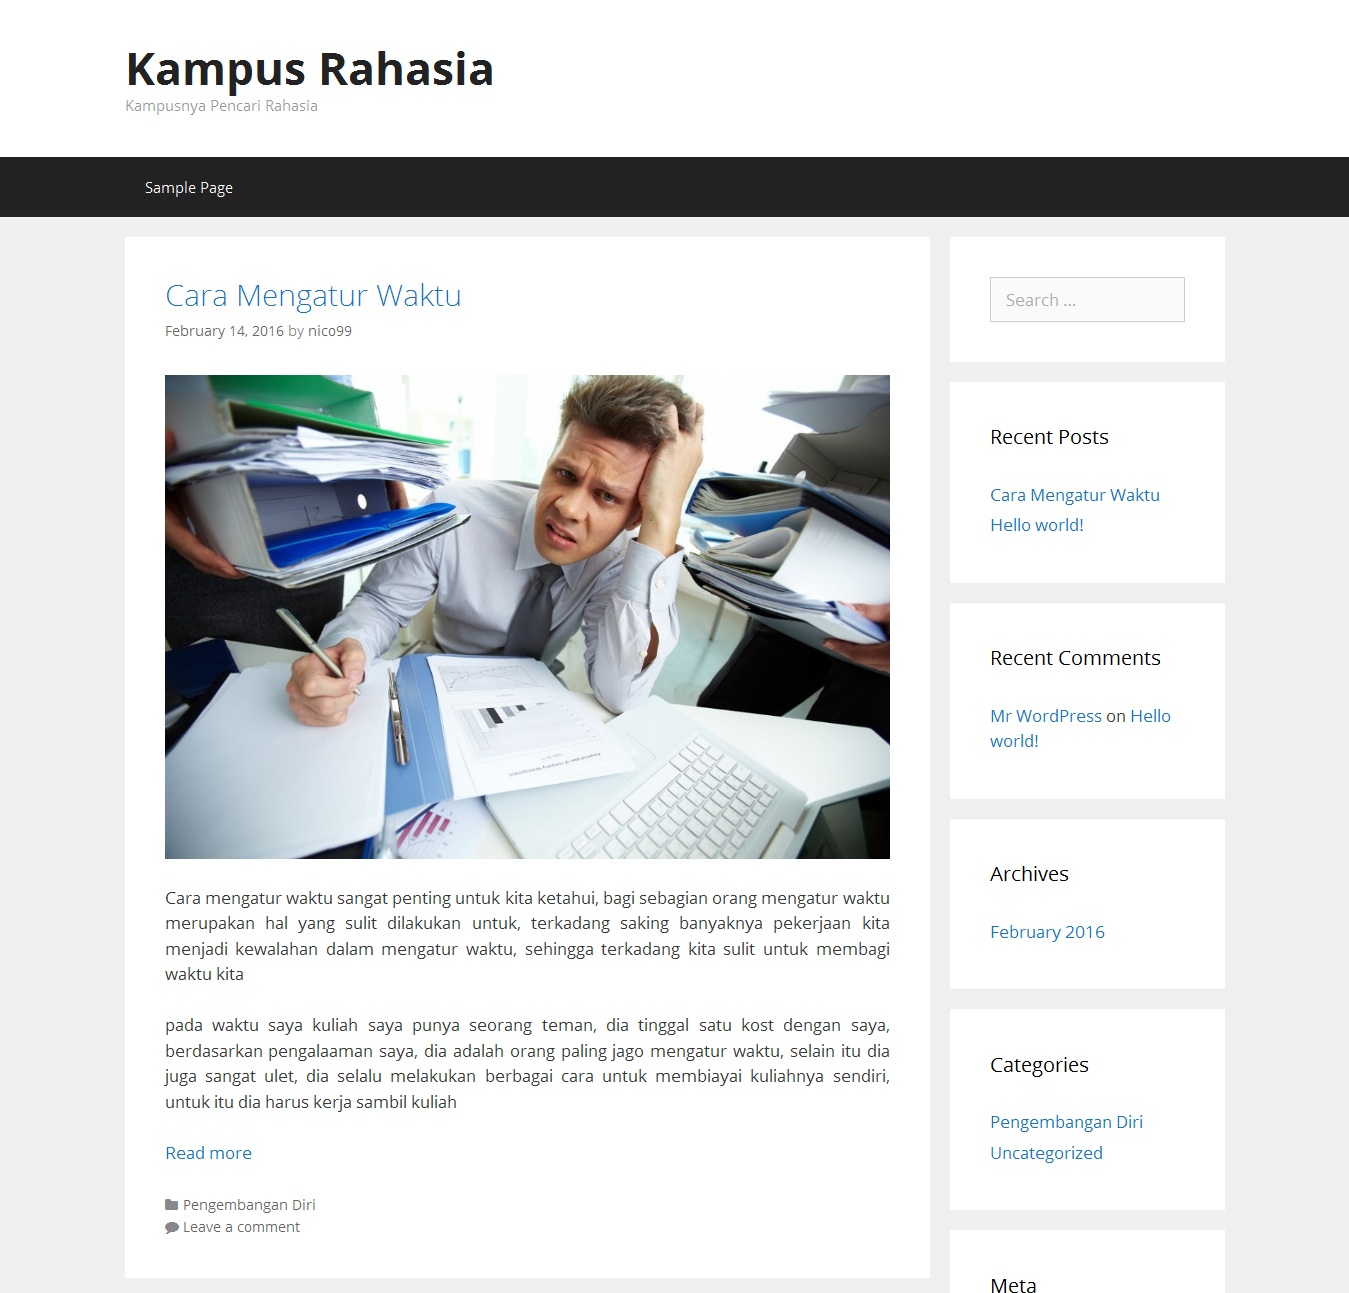 membuat, blog, website, wordpress, tutorial, cara, belajar, artikel, postingan